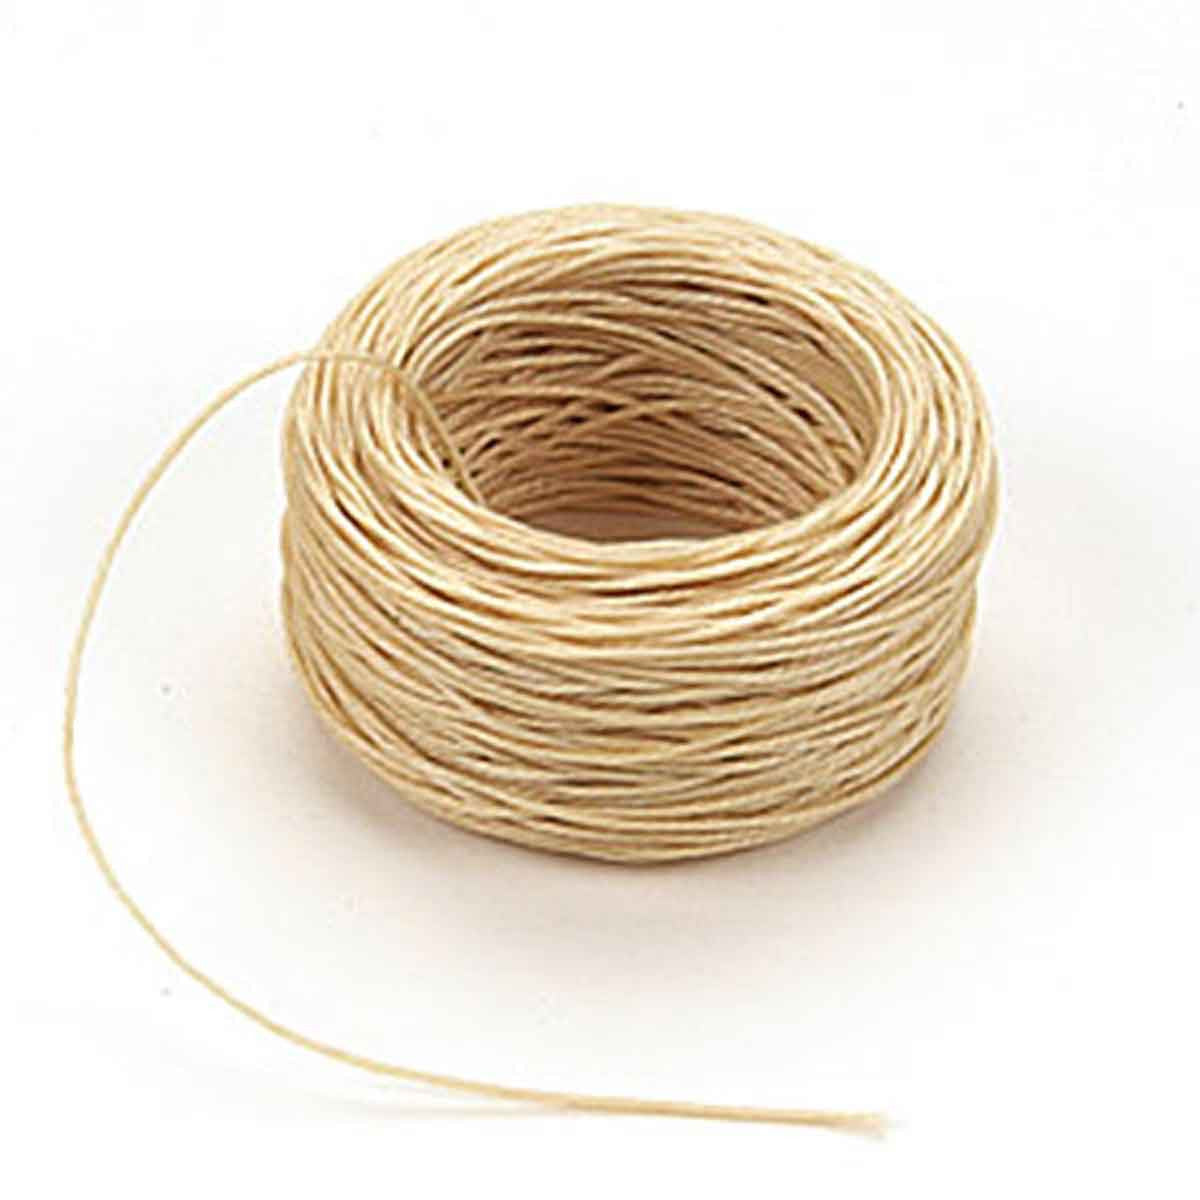 Image of 94-140 - Coarse Speedy Sticher Thread - 30 Yards